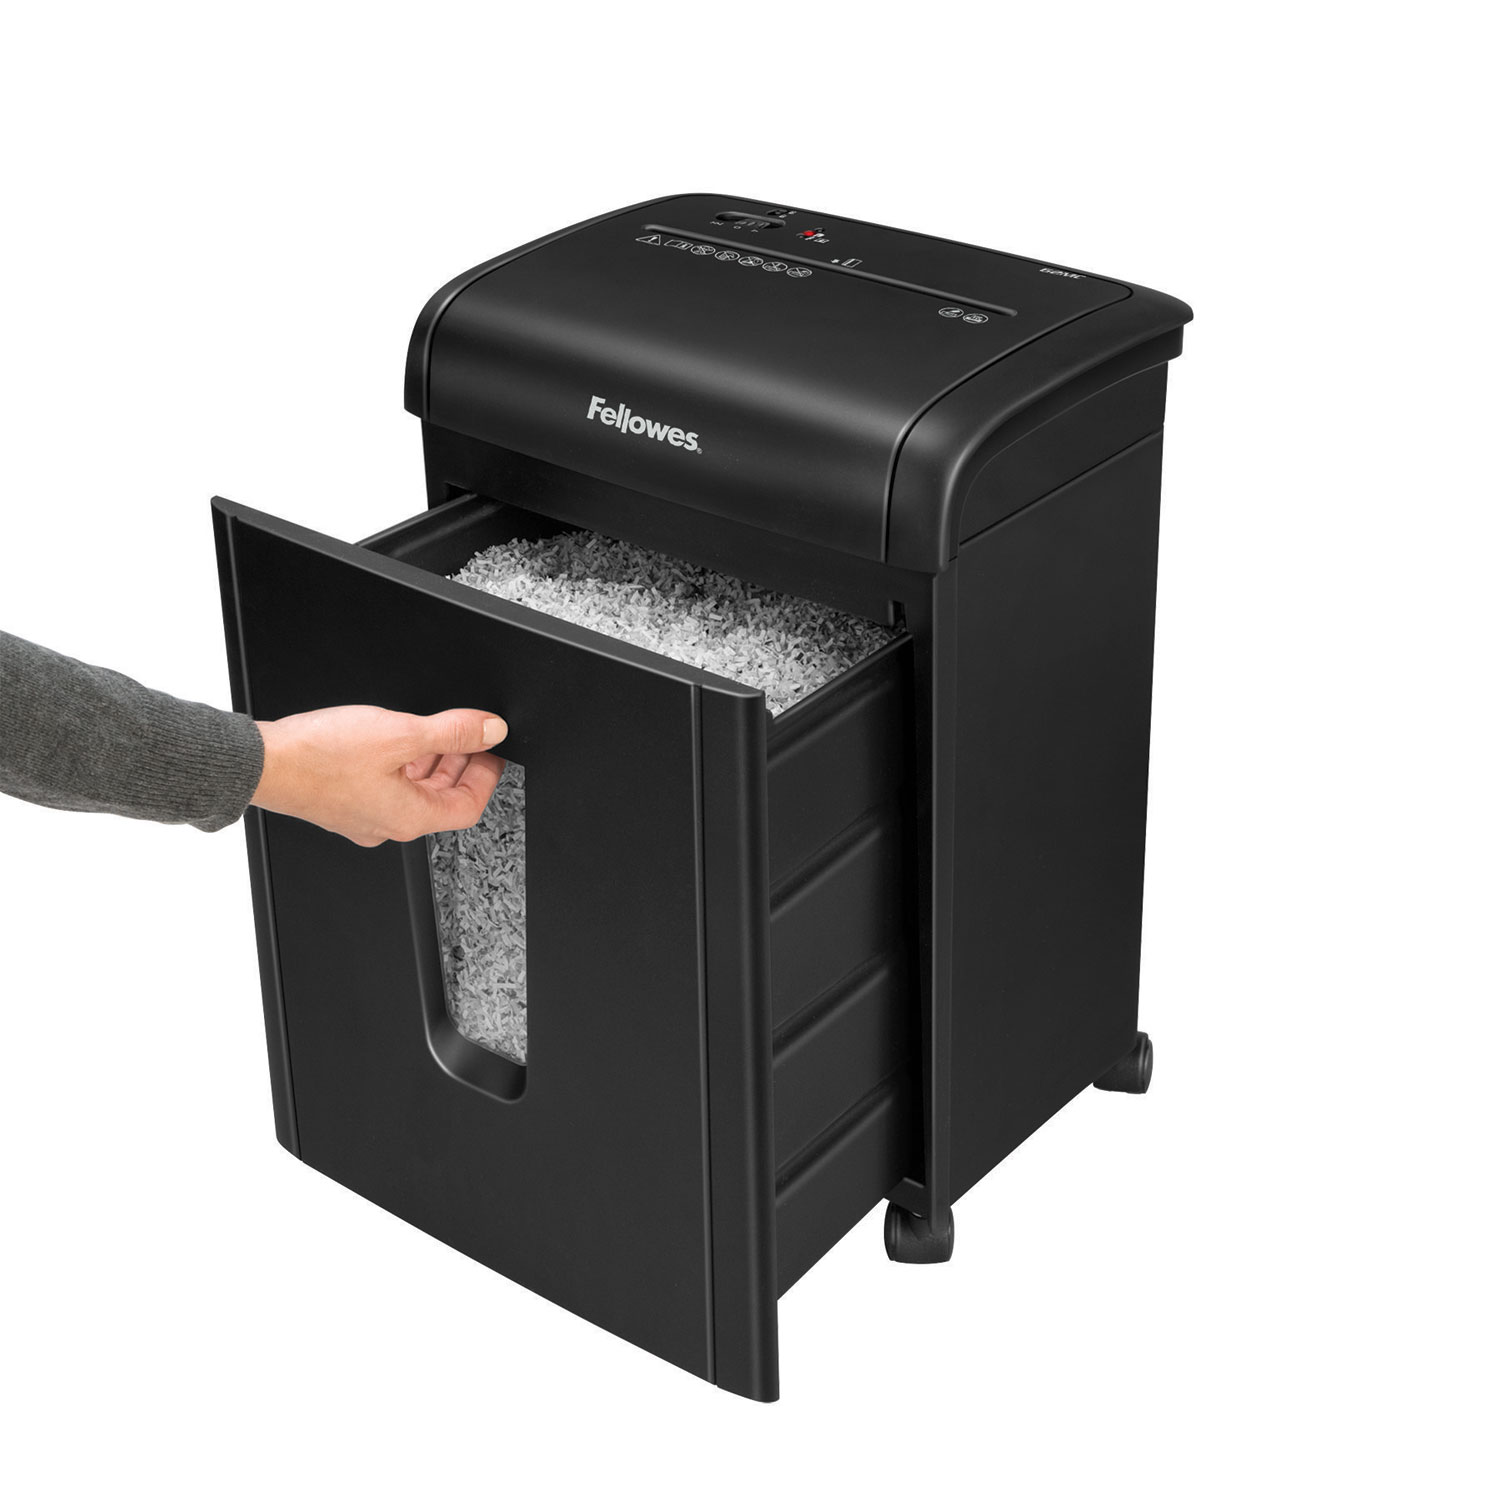 fellowes destructeur professionnel 62mc destructeur de